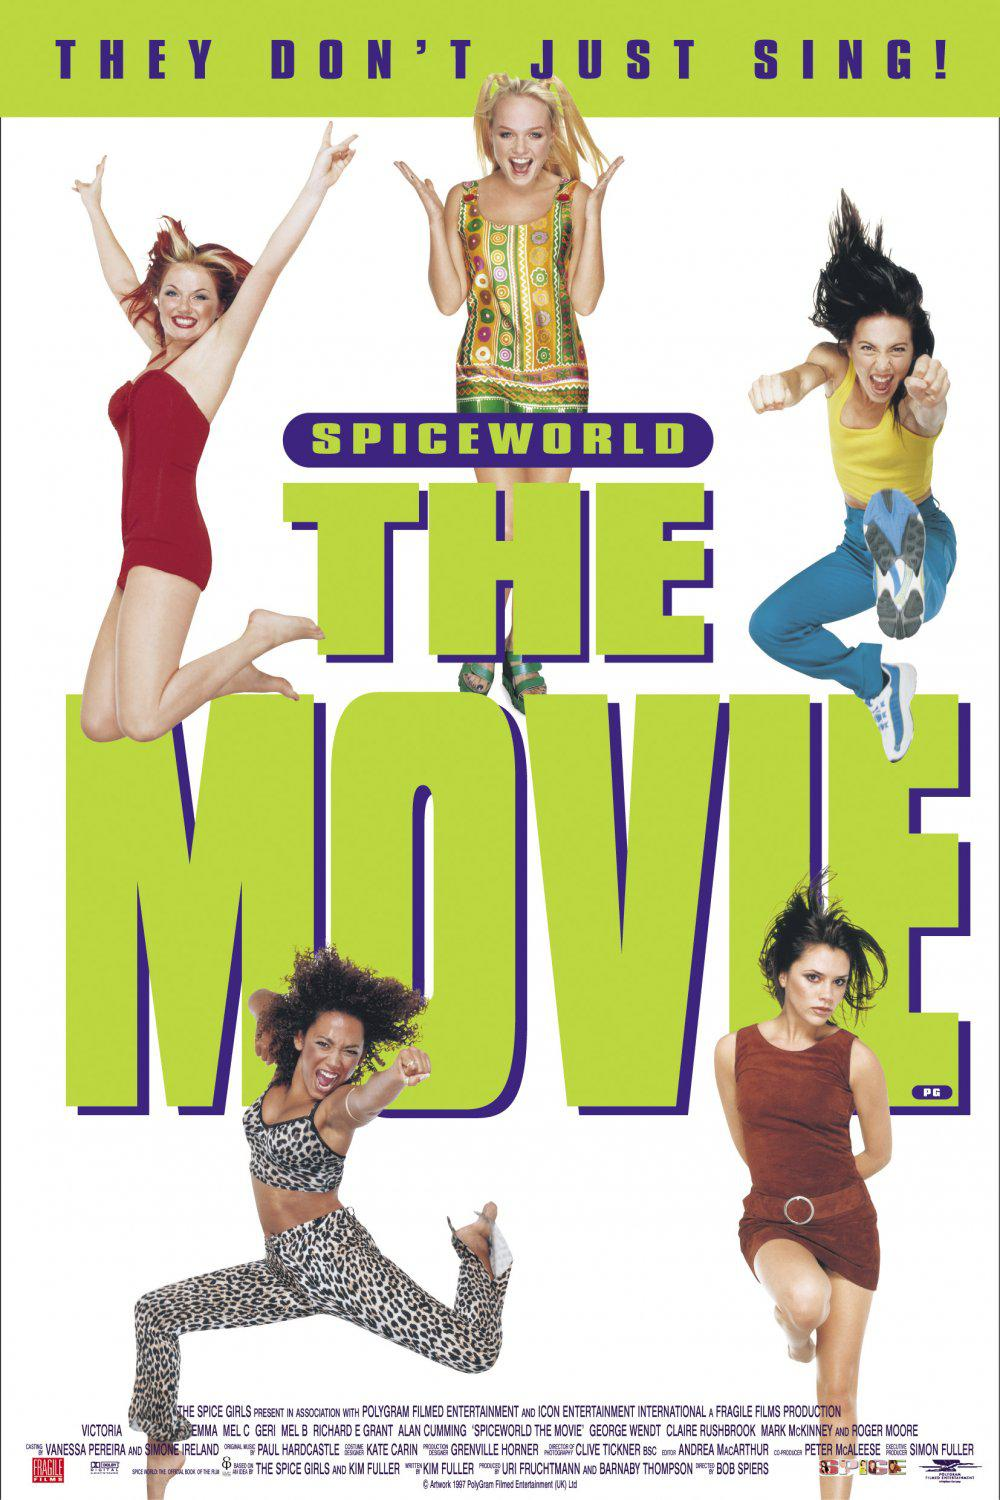 Spice world ... the movie - They don't just Sing - film poster